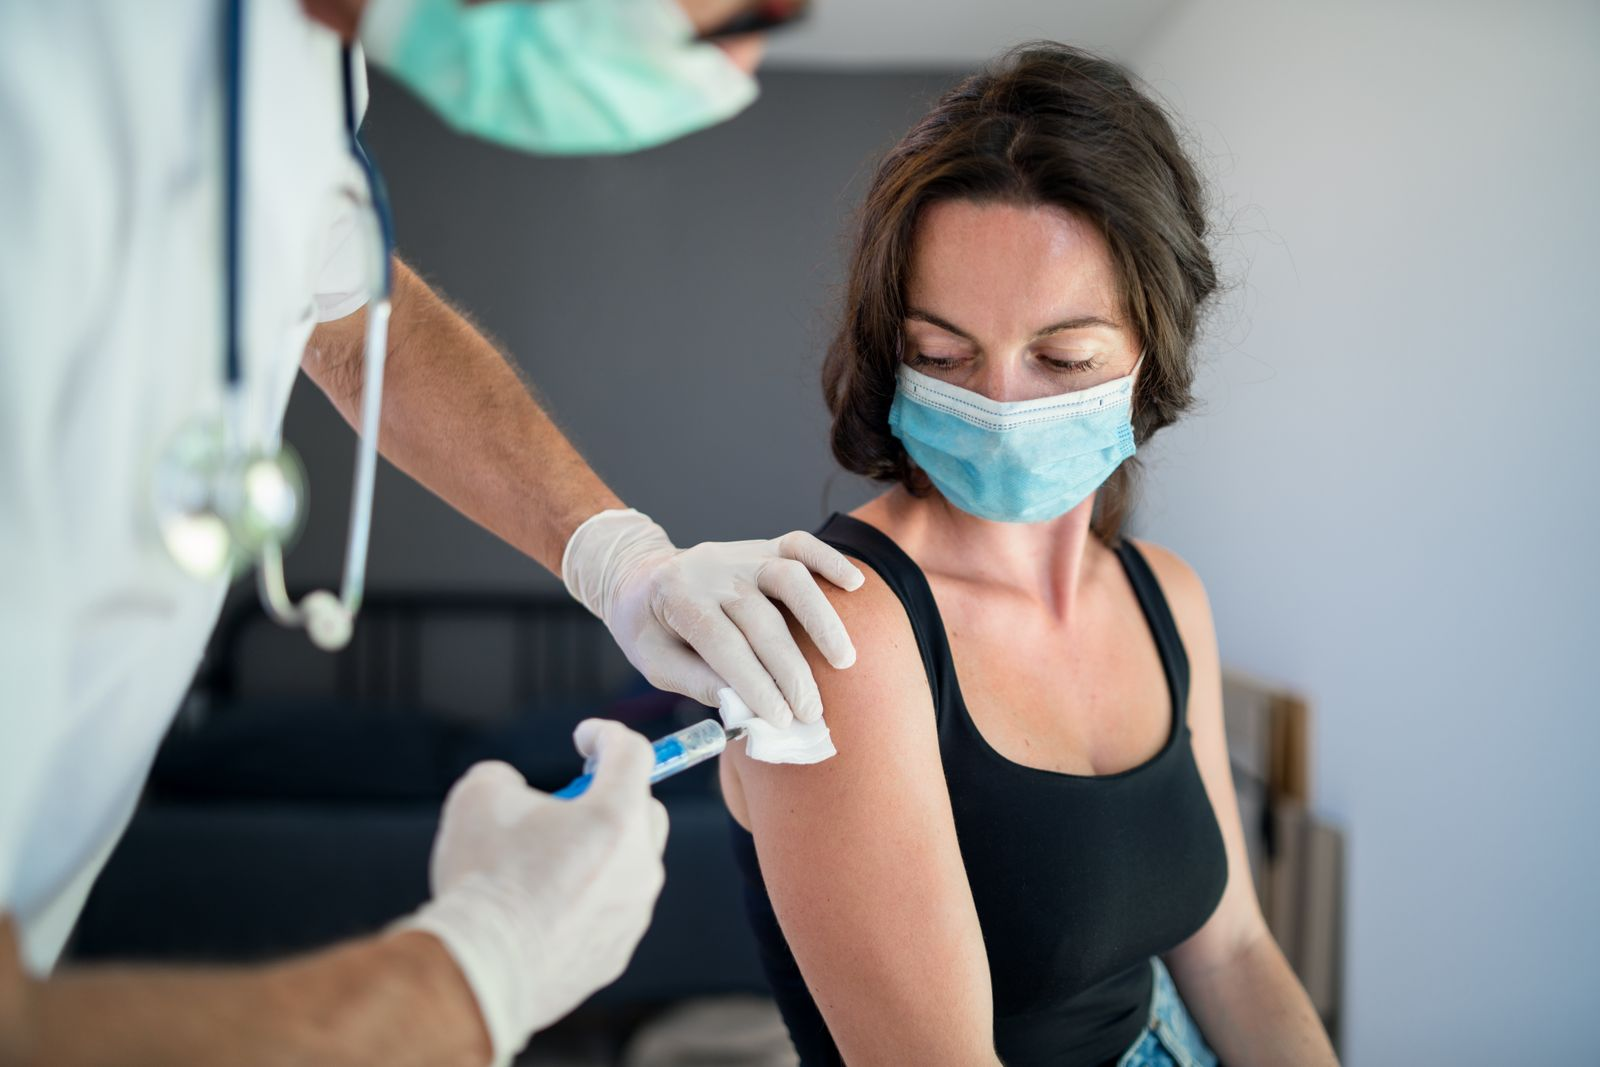 Woman with face mask getting vaccinated, coronavirus concept.